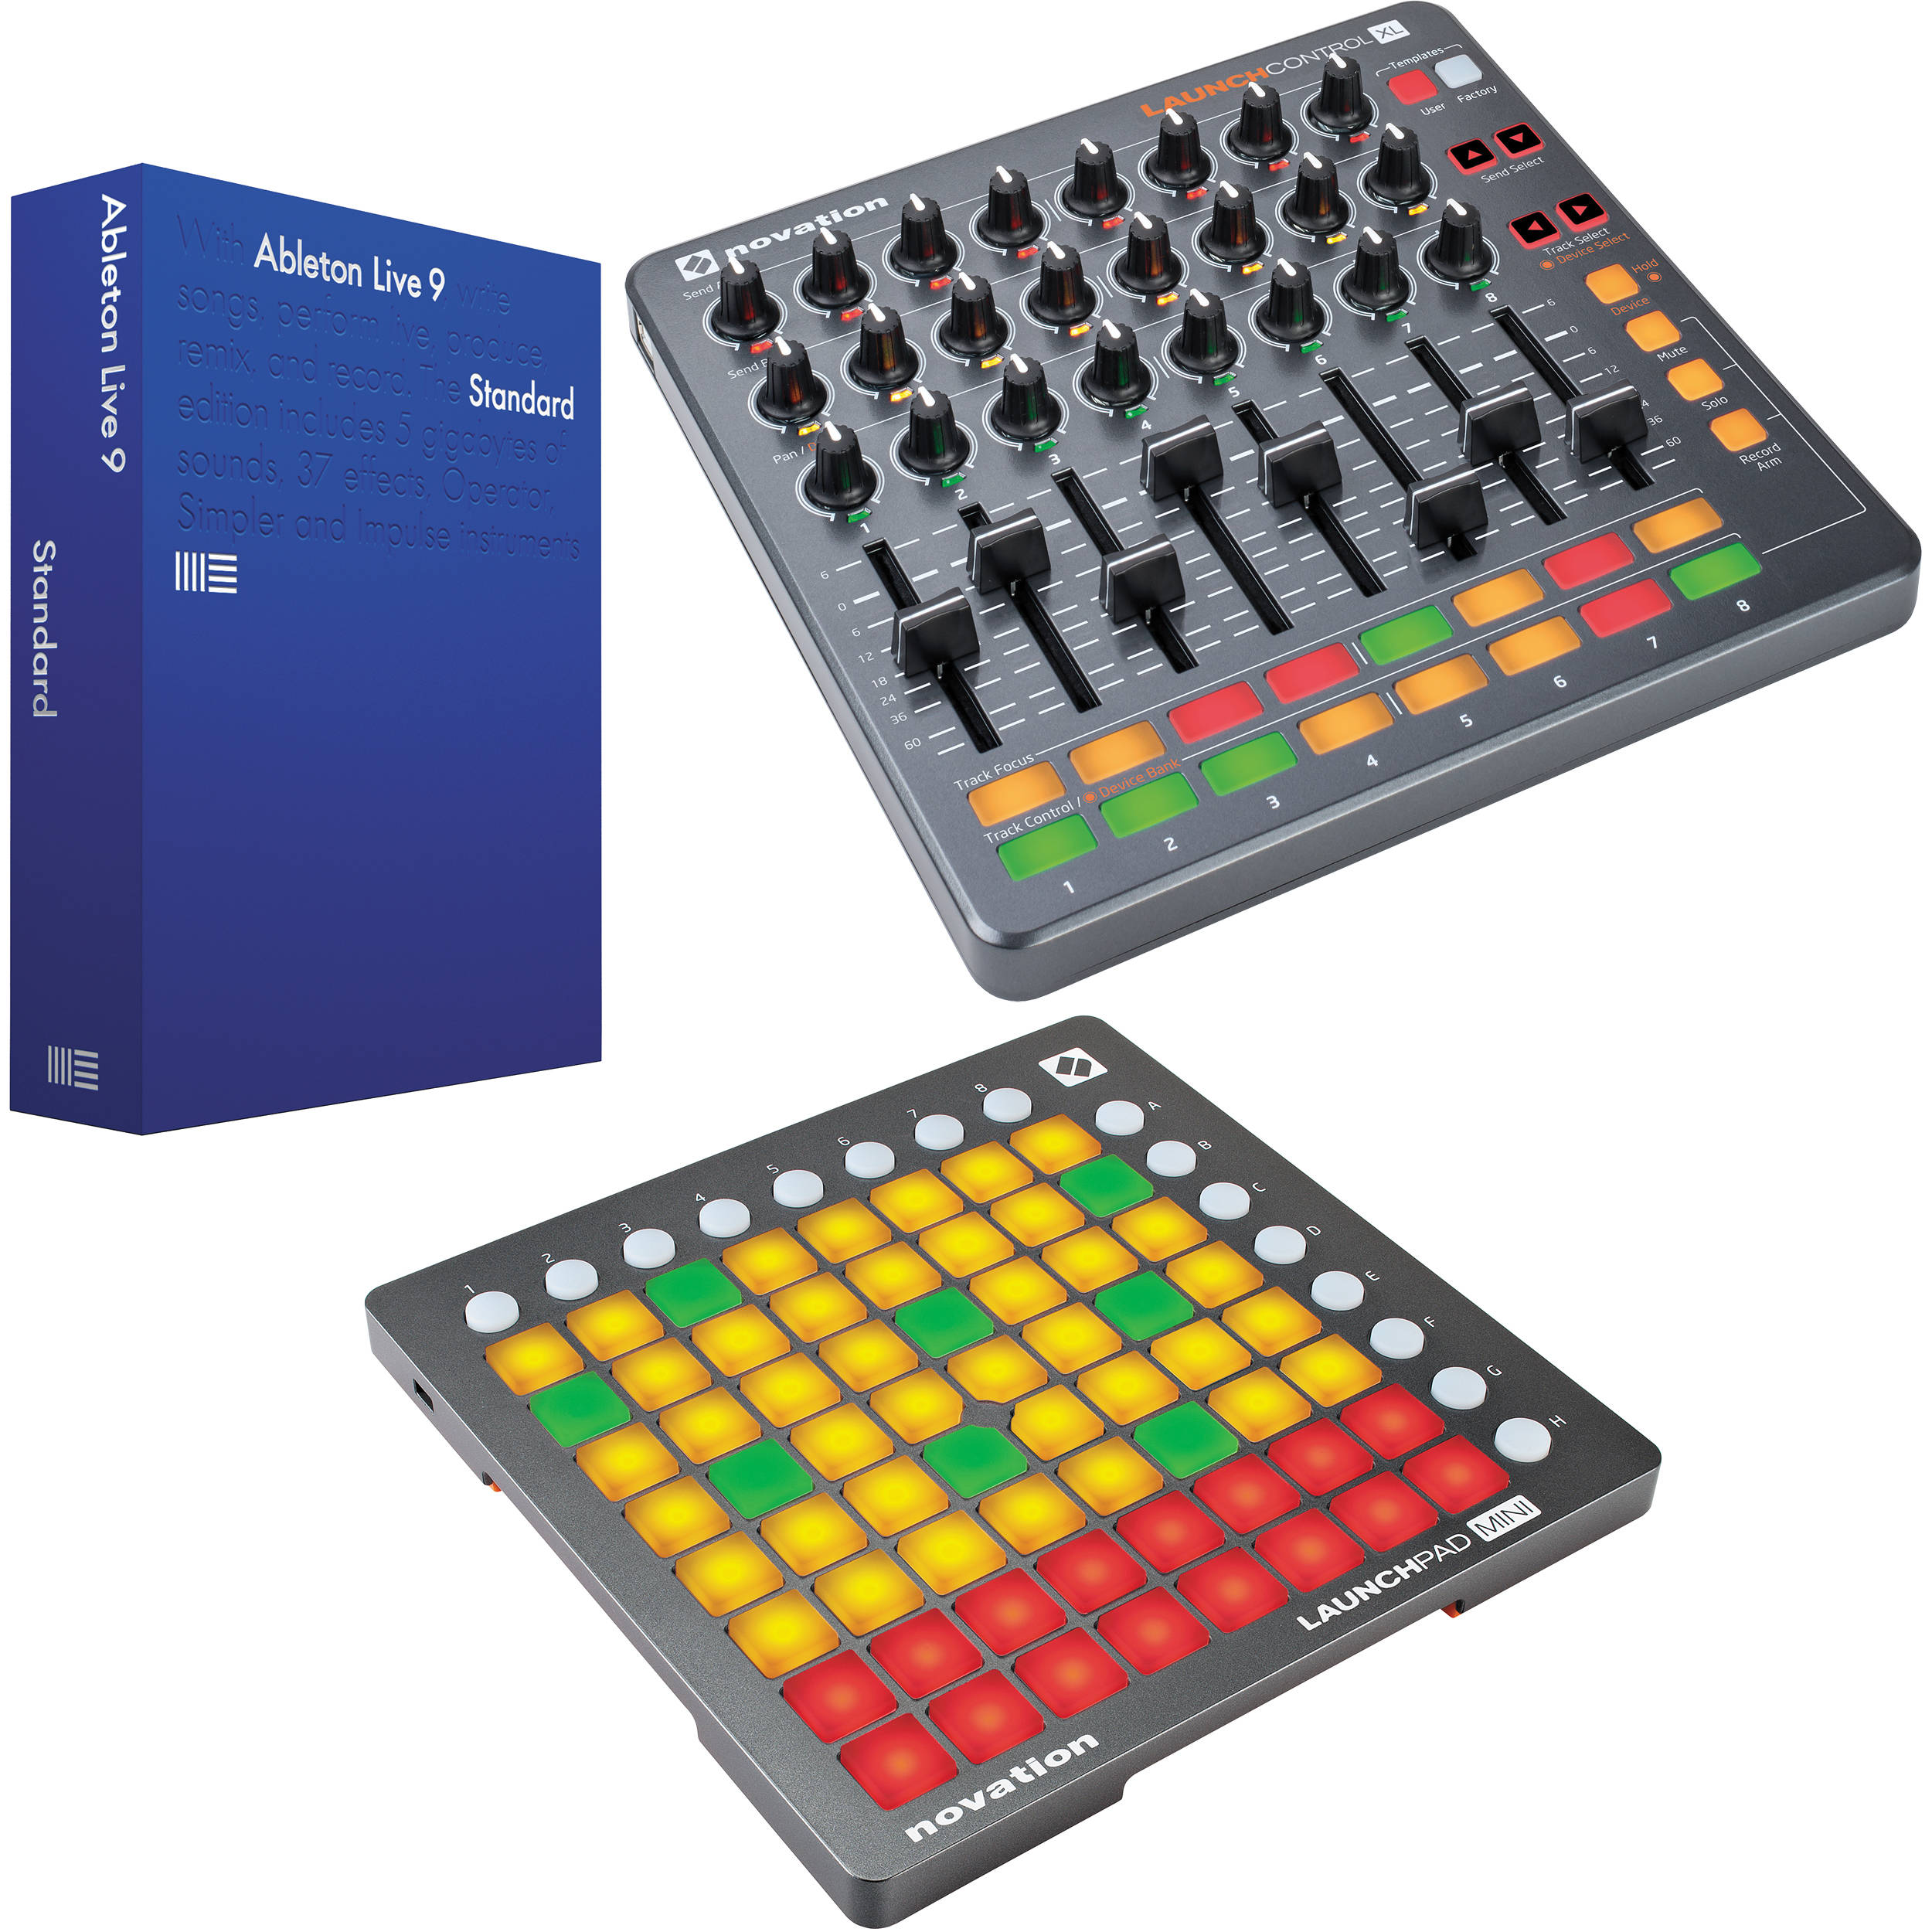 ableton live 9 standard with novation launch control xl and b h. Black Bedroom Furniture Sets. Home Design Ideas